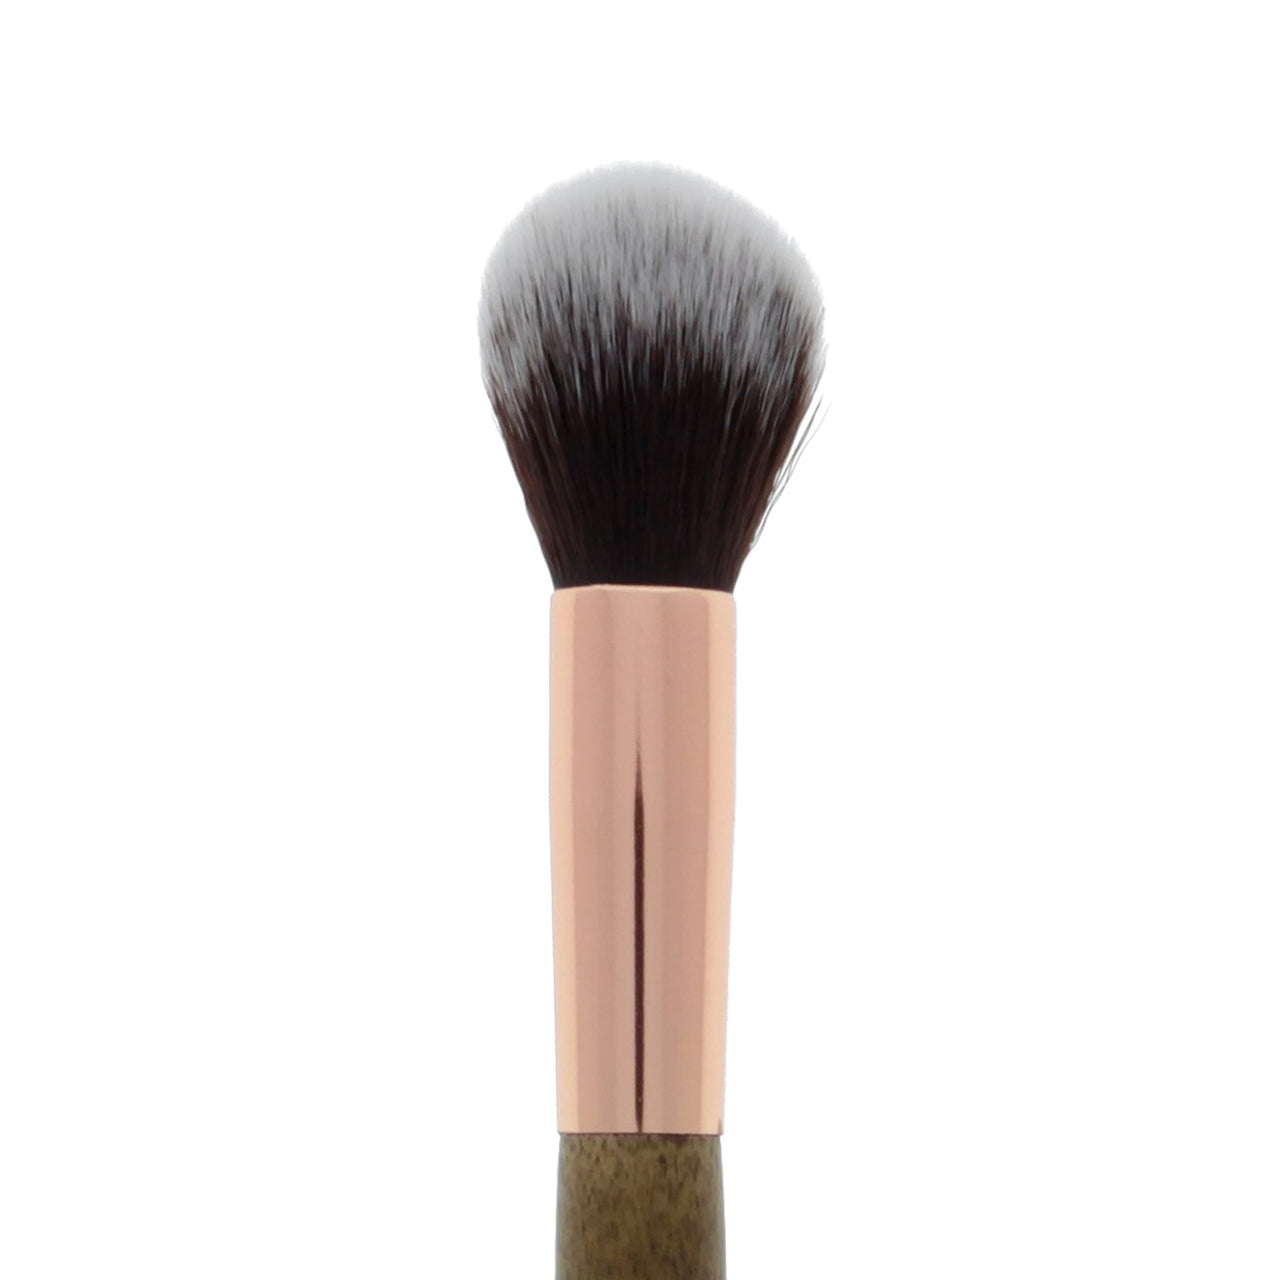 AM-BR129 : Highlighter & Contour Brush